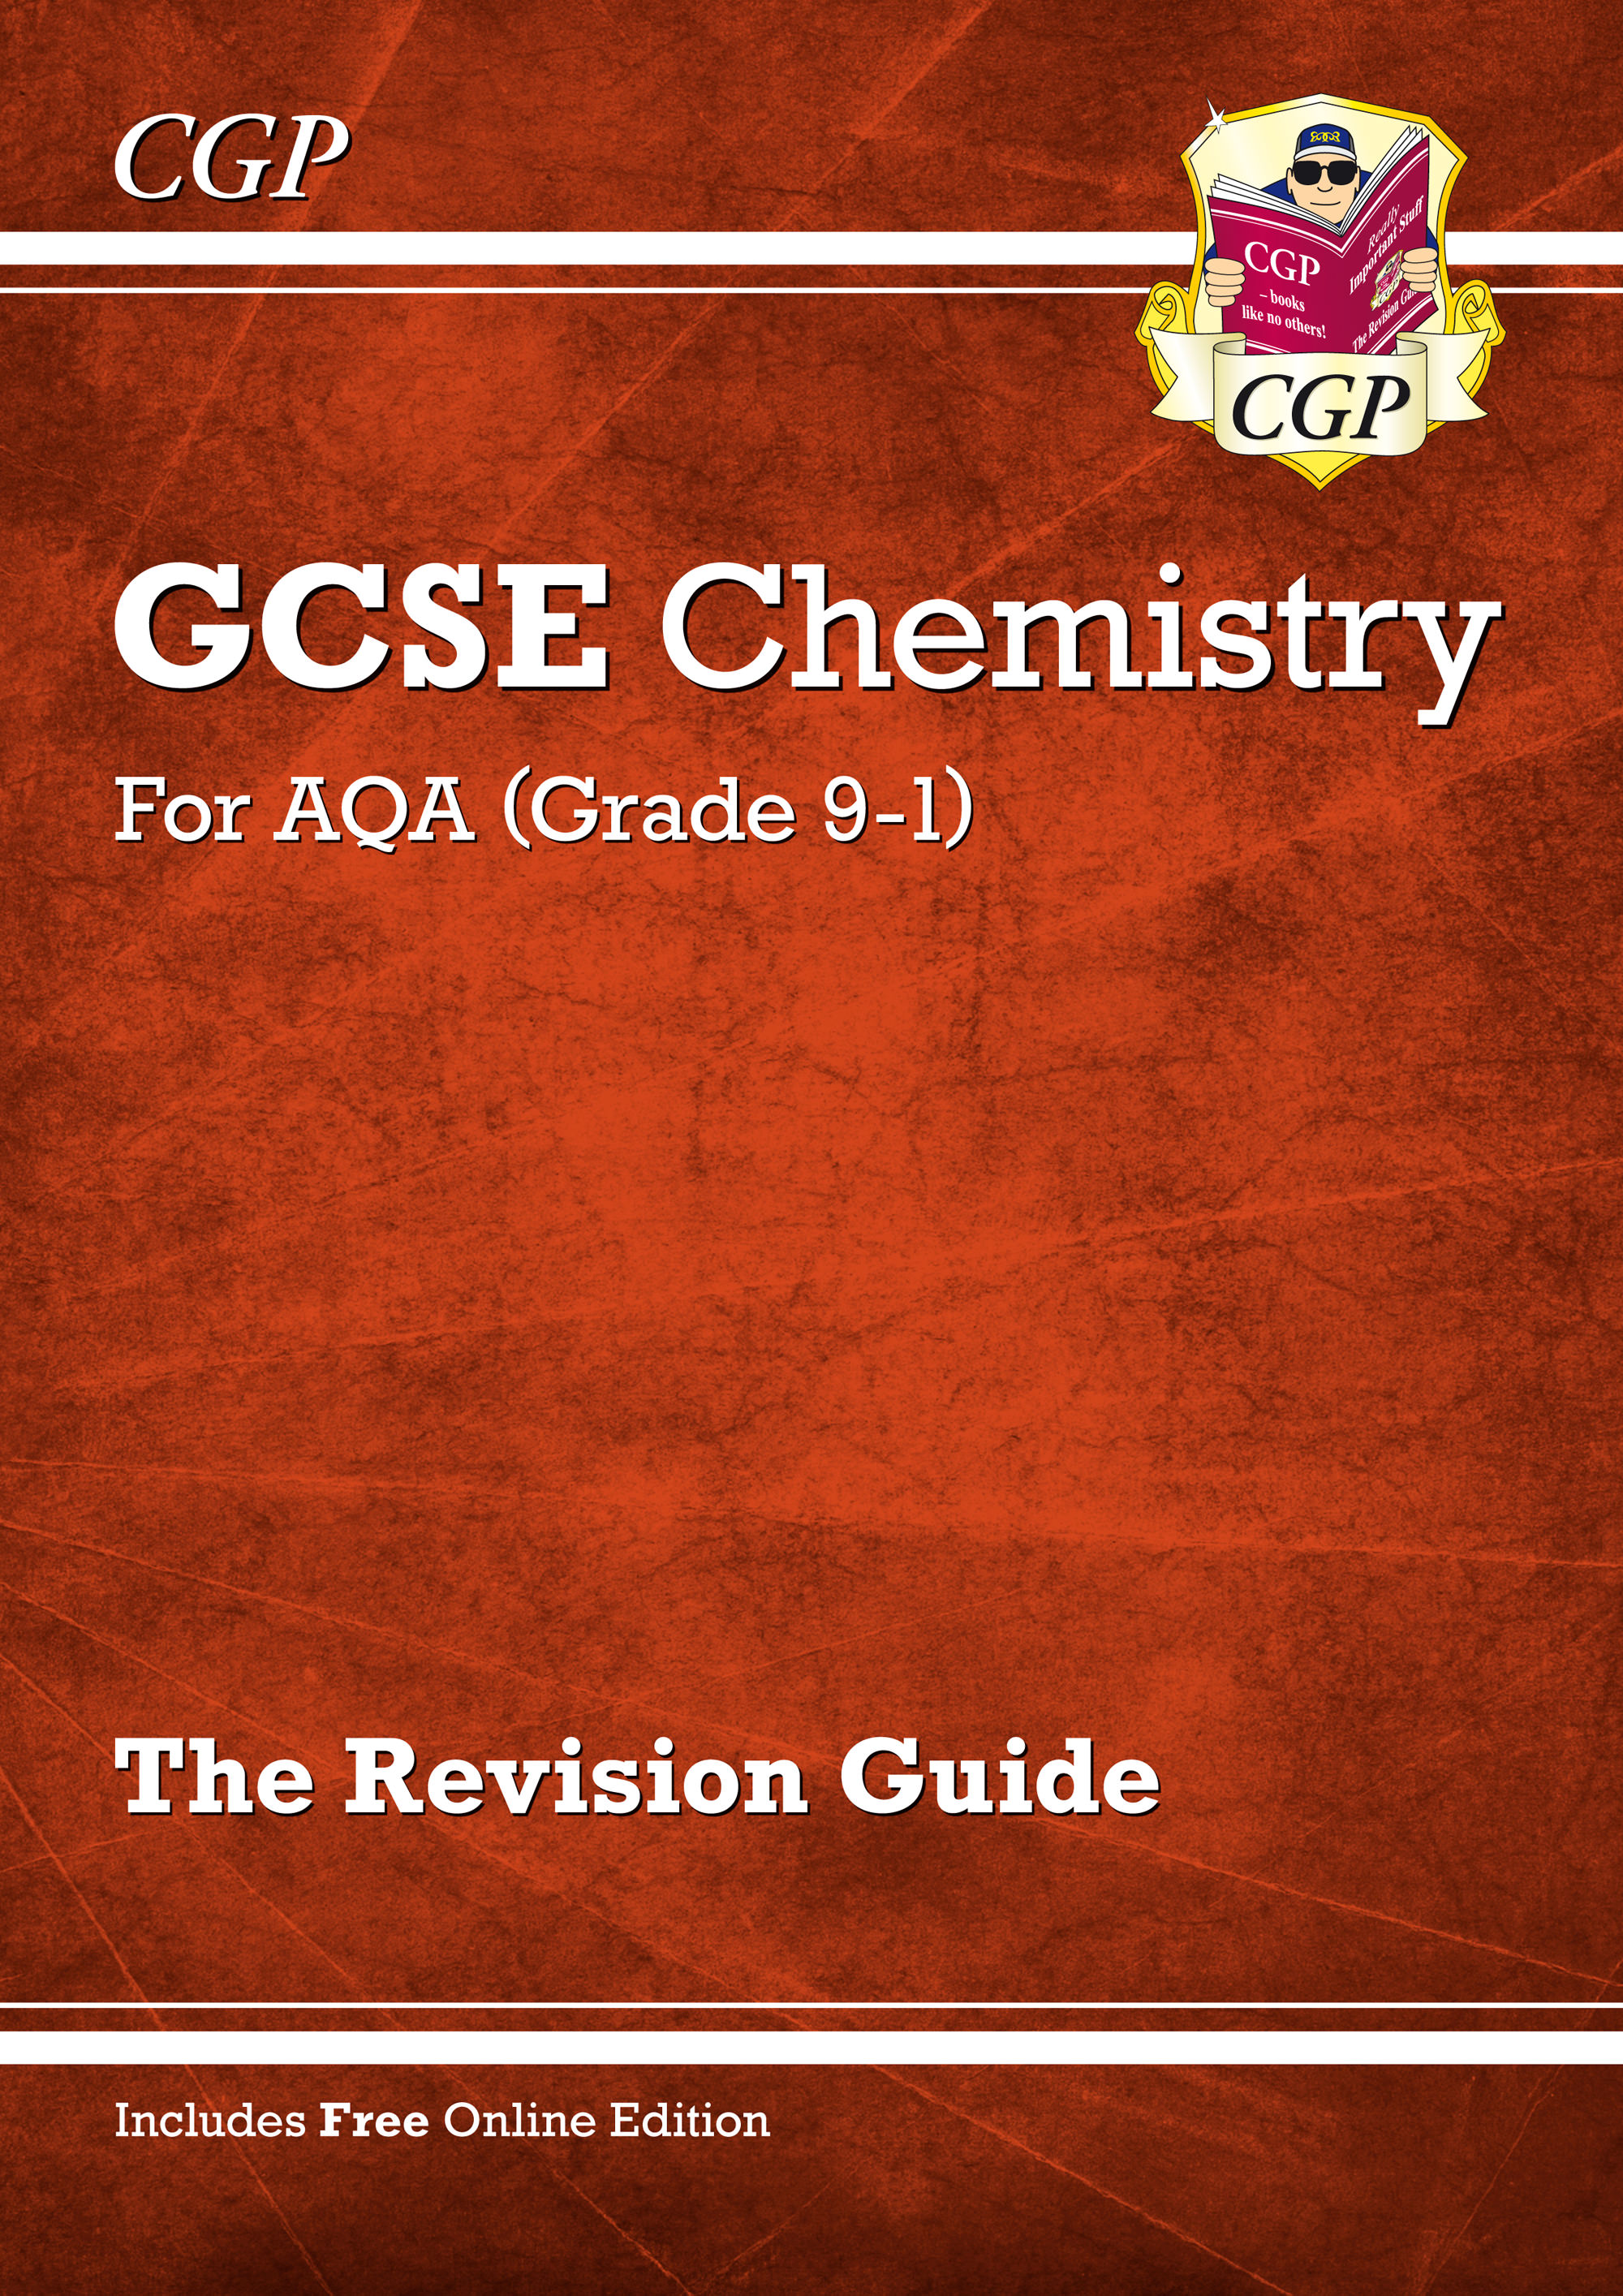 CAR45 - Grade 9-1 GCSE Chemistry: AQA Revision Guide with Online Edition - Higher